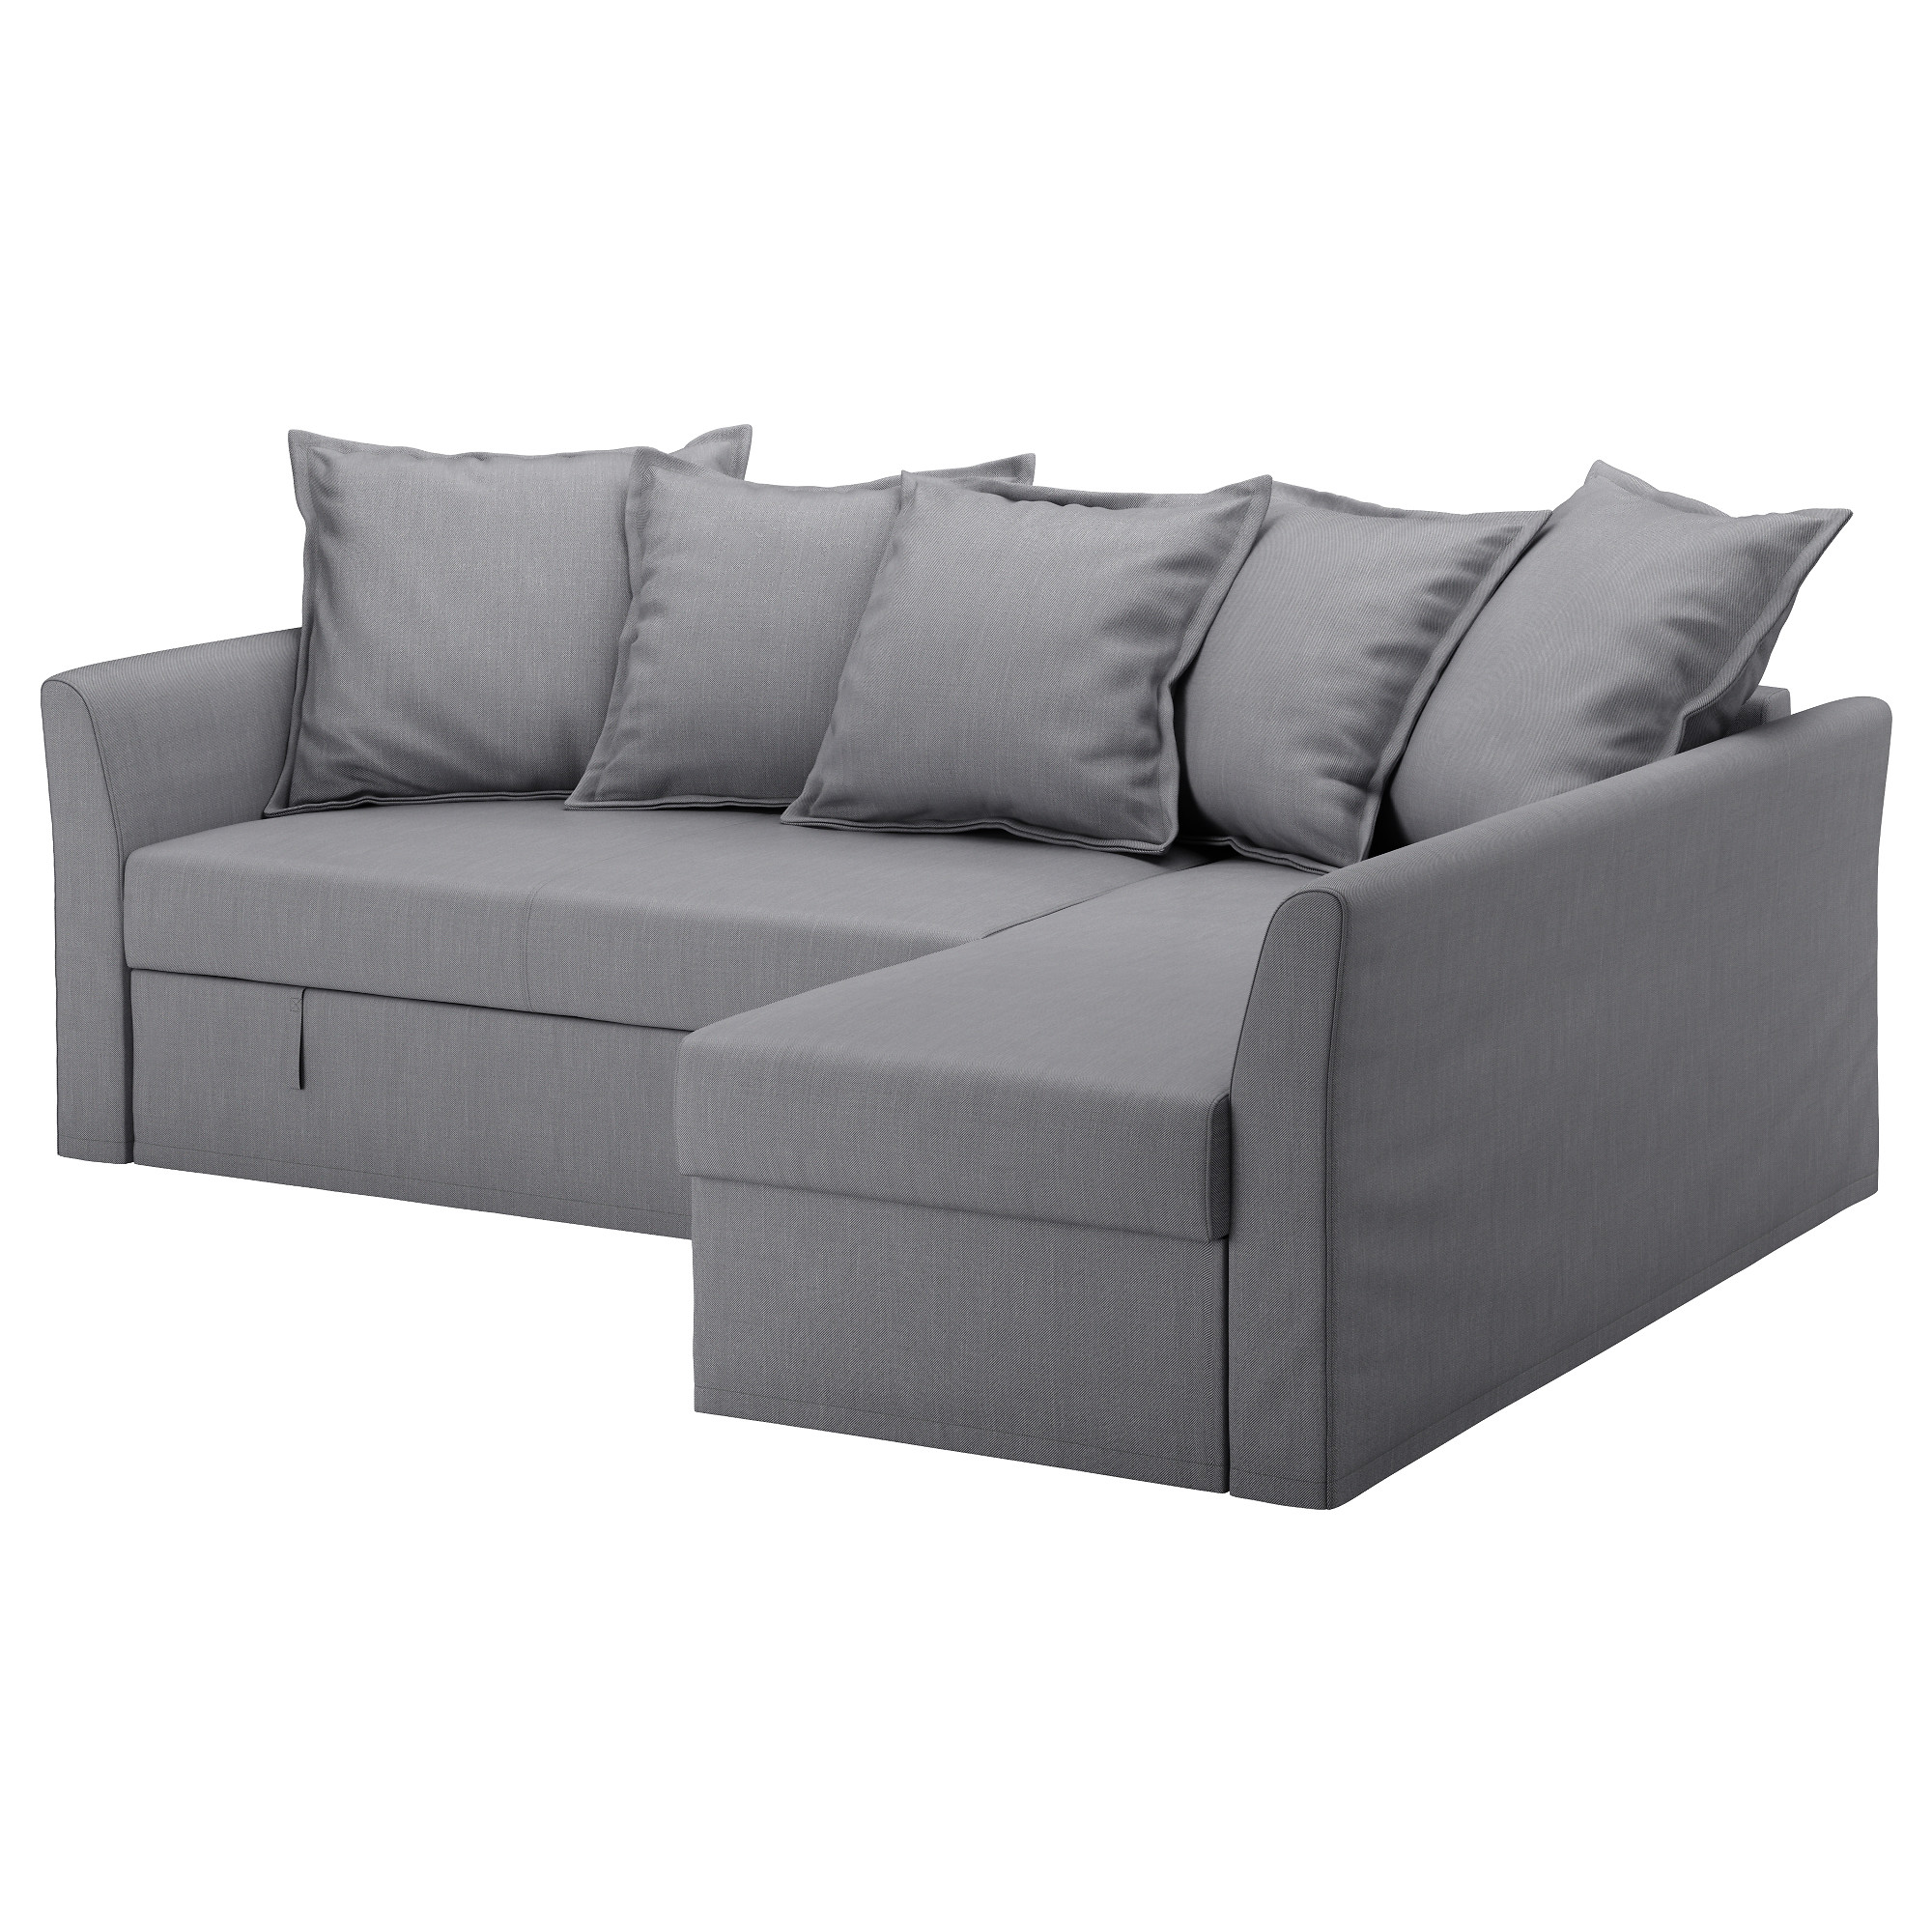 Sofa bed with storage ikea - Holmsund Corner Sofa Bed Nordvalla Medium Grey